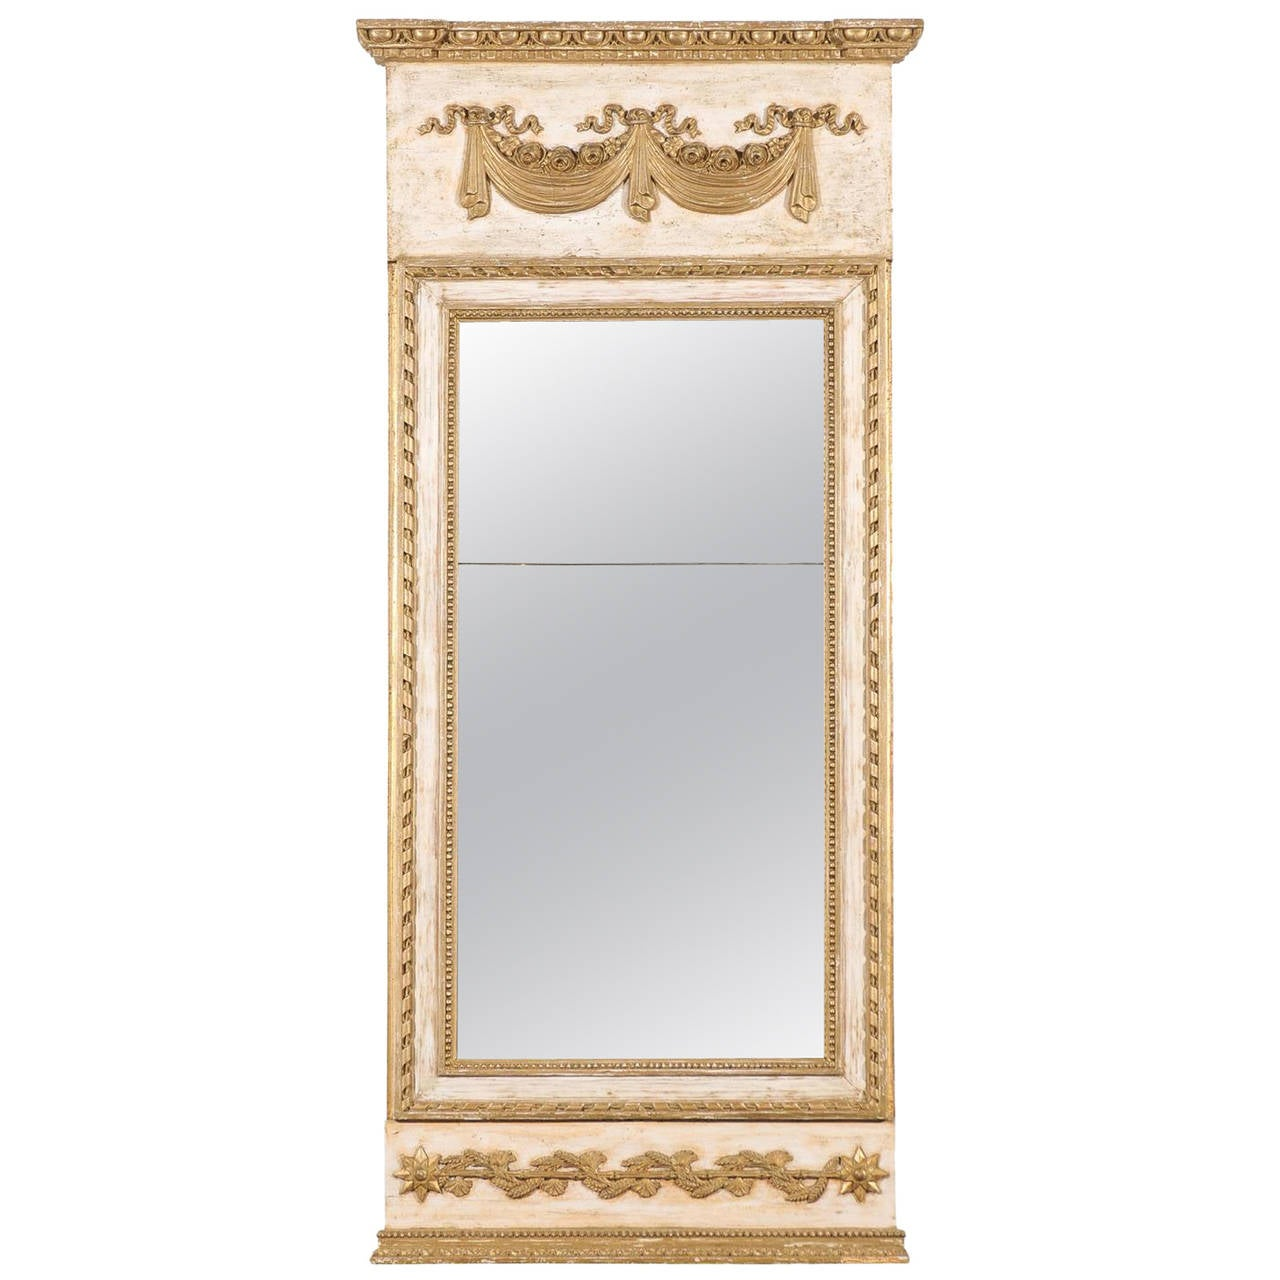 Late 18th Century Swedish Gustavian Period Trumeau Mirror with Swag and Roses